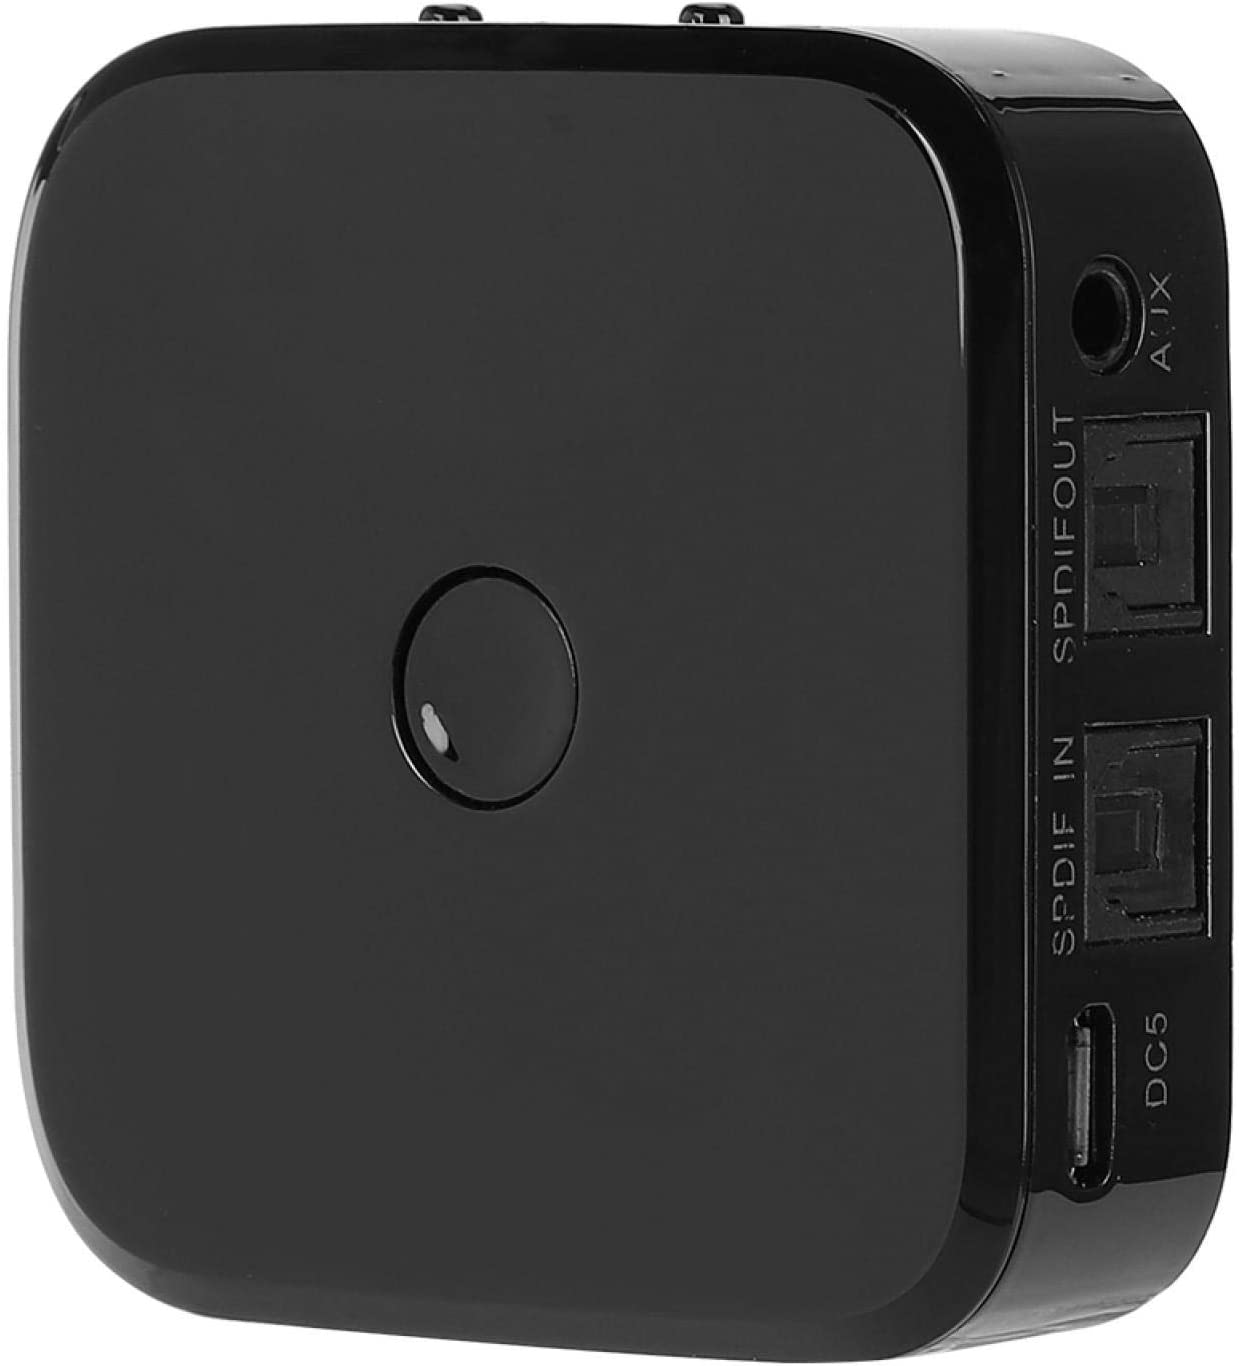 Demeras Bluetooth Receiver Audio 40% OFF Cheap Max 69% OFF Sale Lossless Transmitter